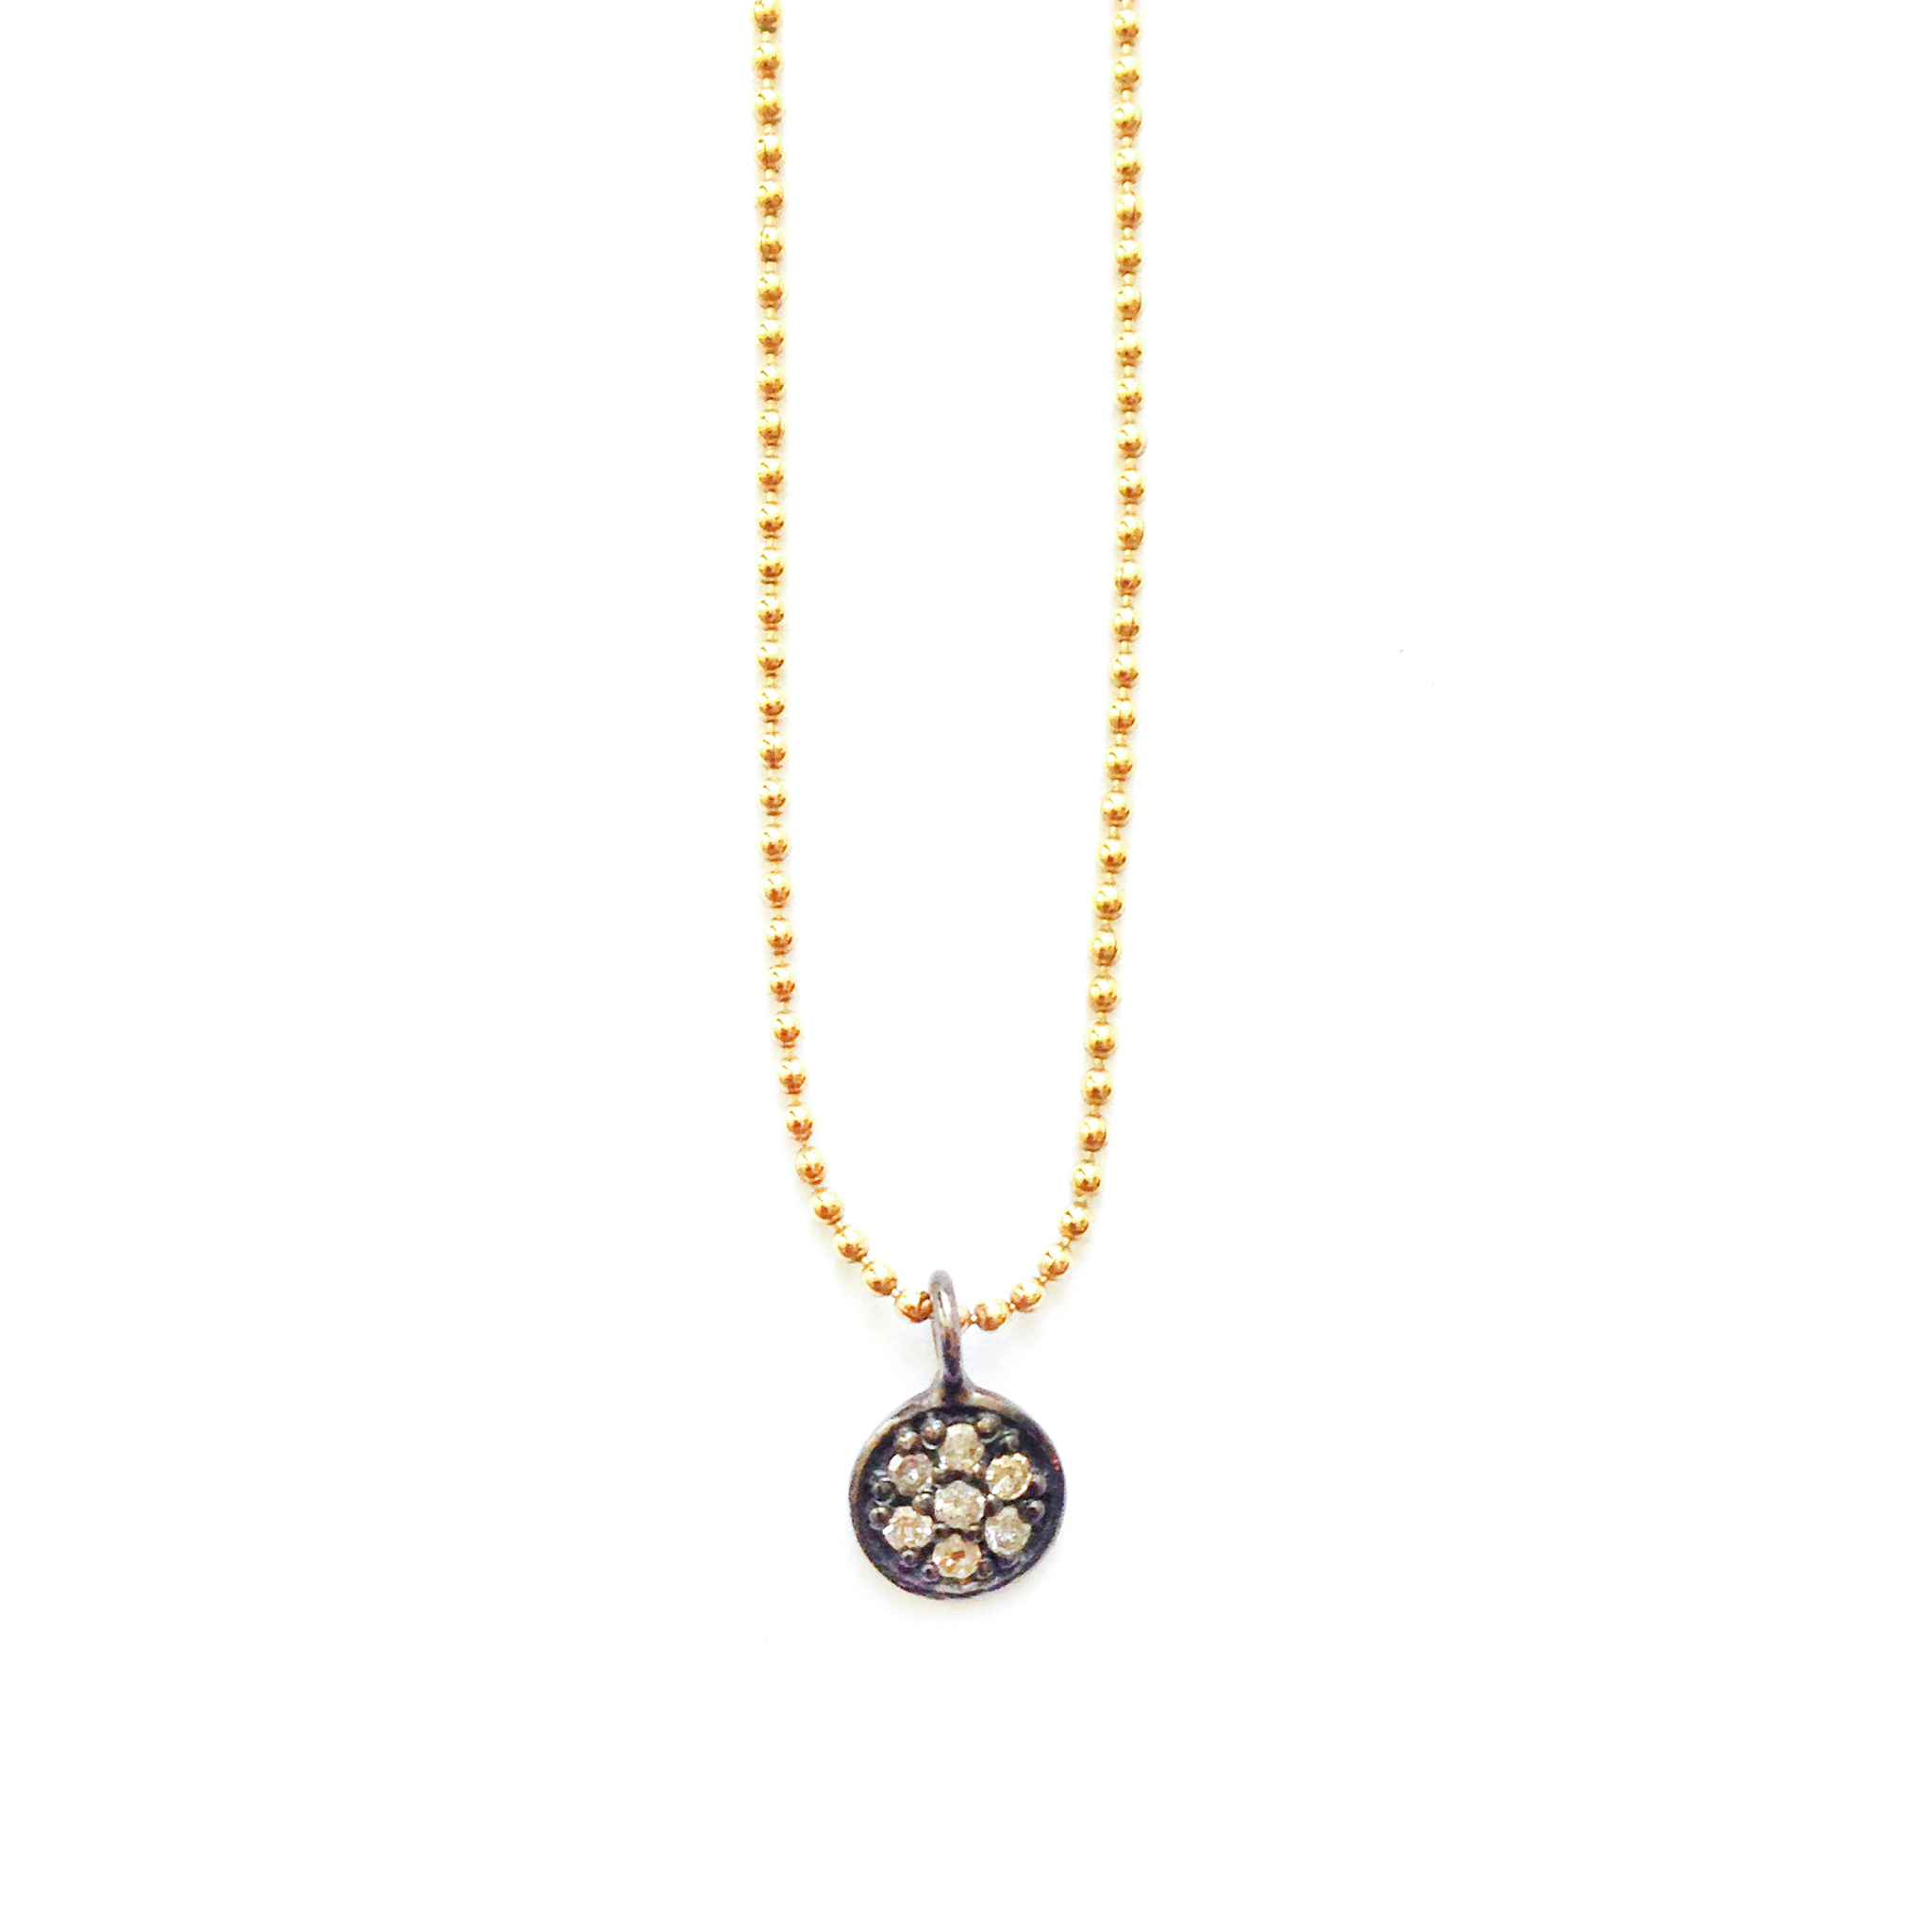 KYA PAVÉ DIAMOND DISC NECKLACE